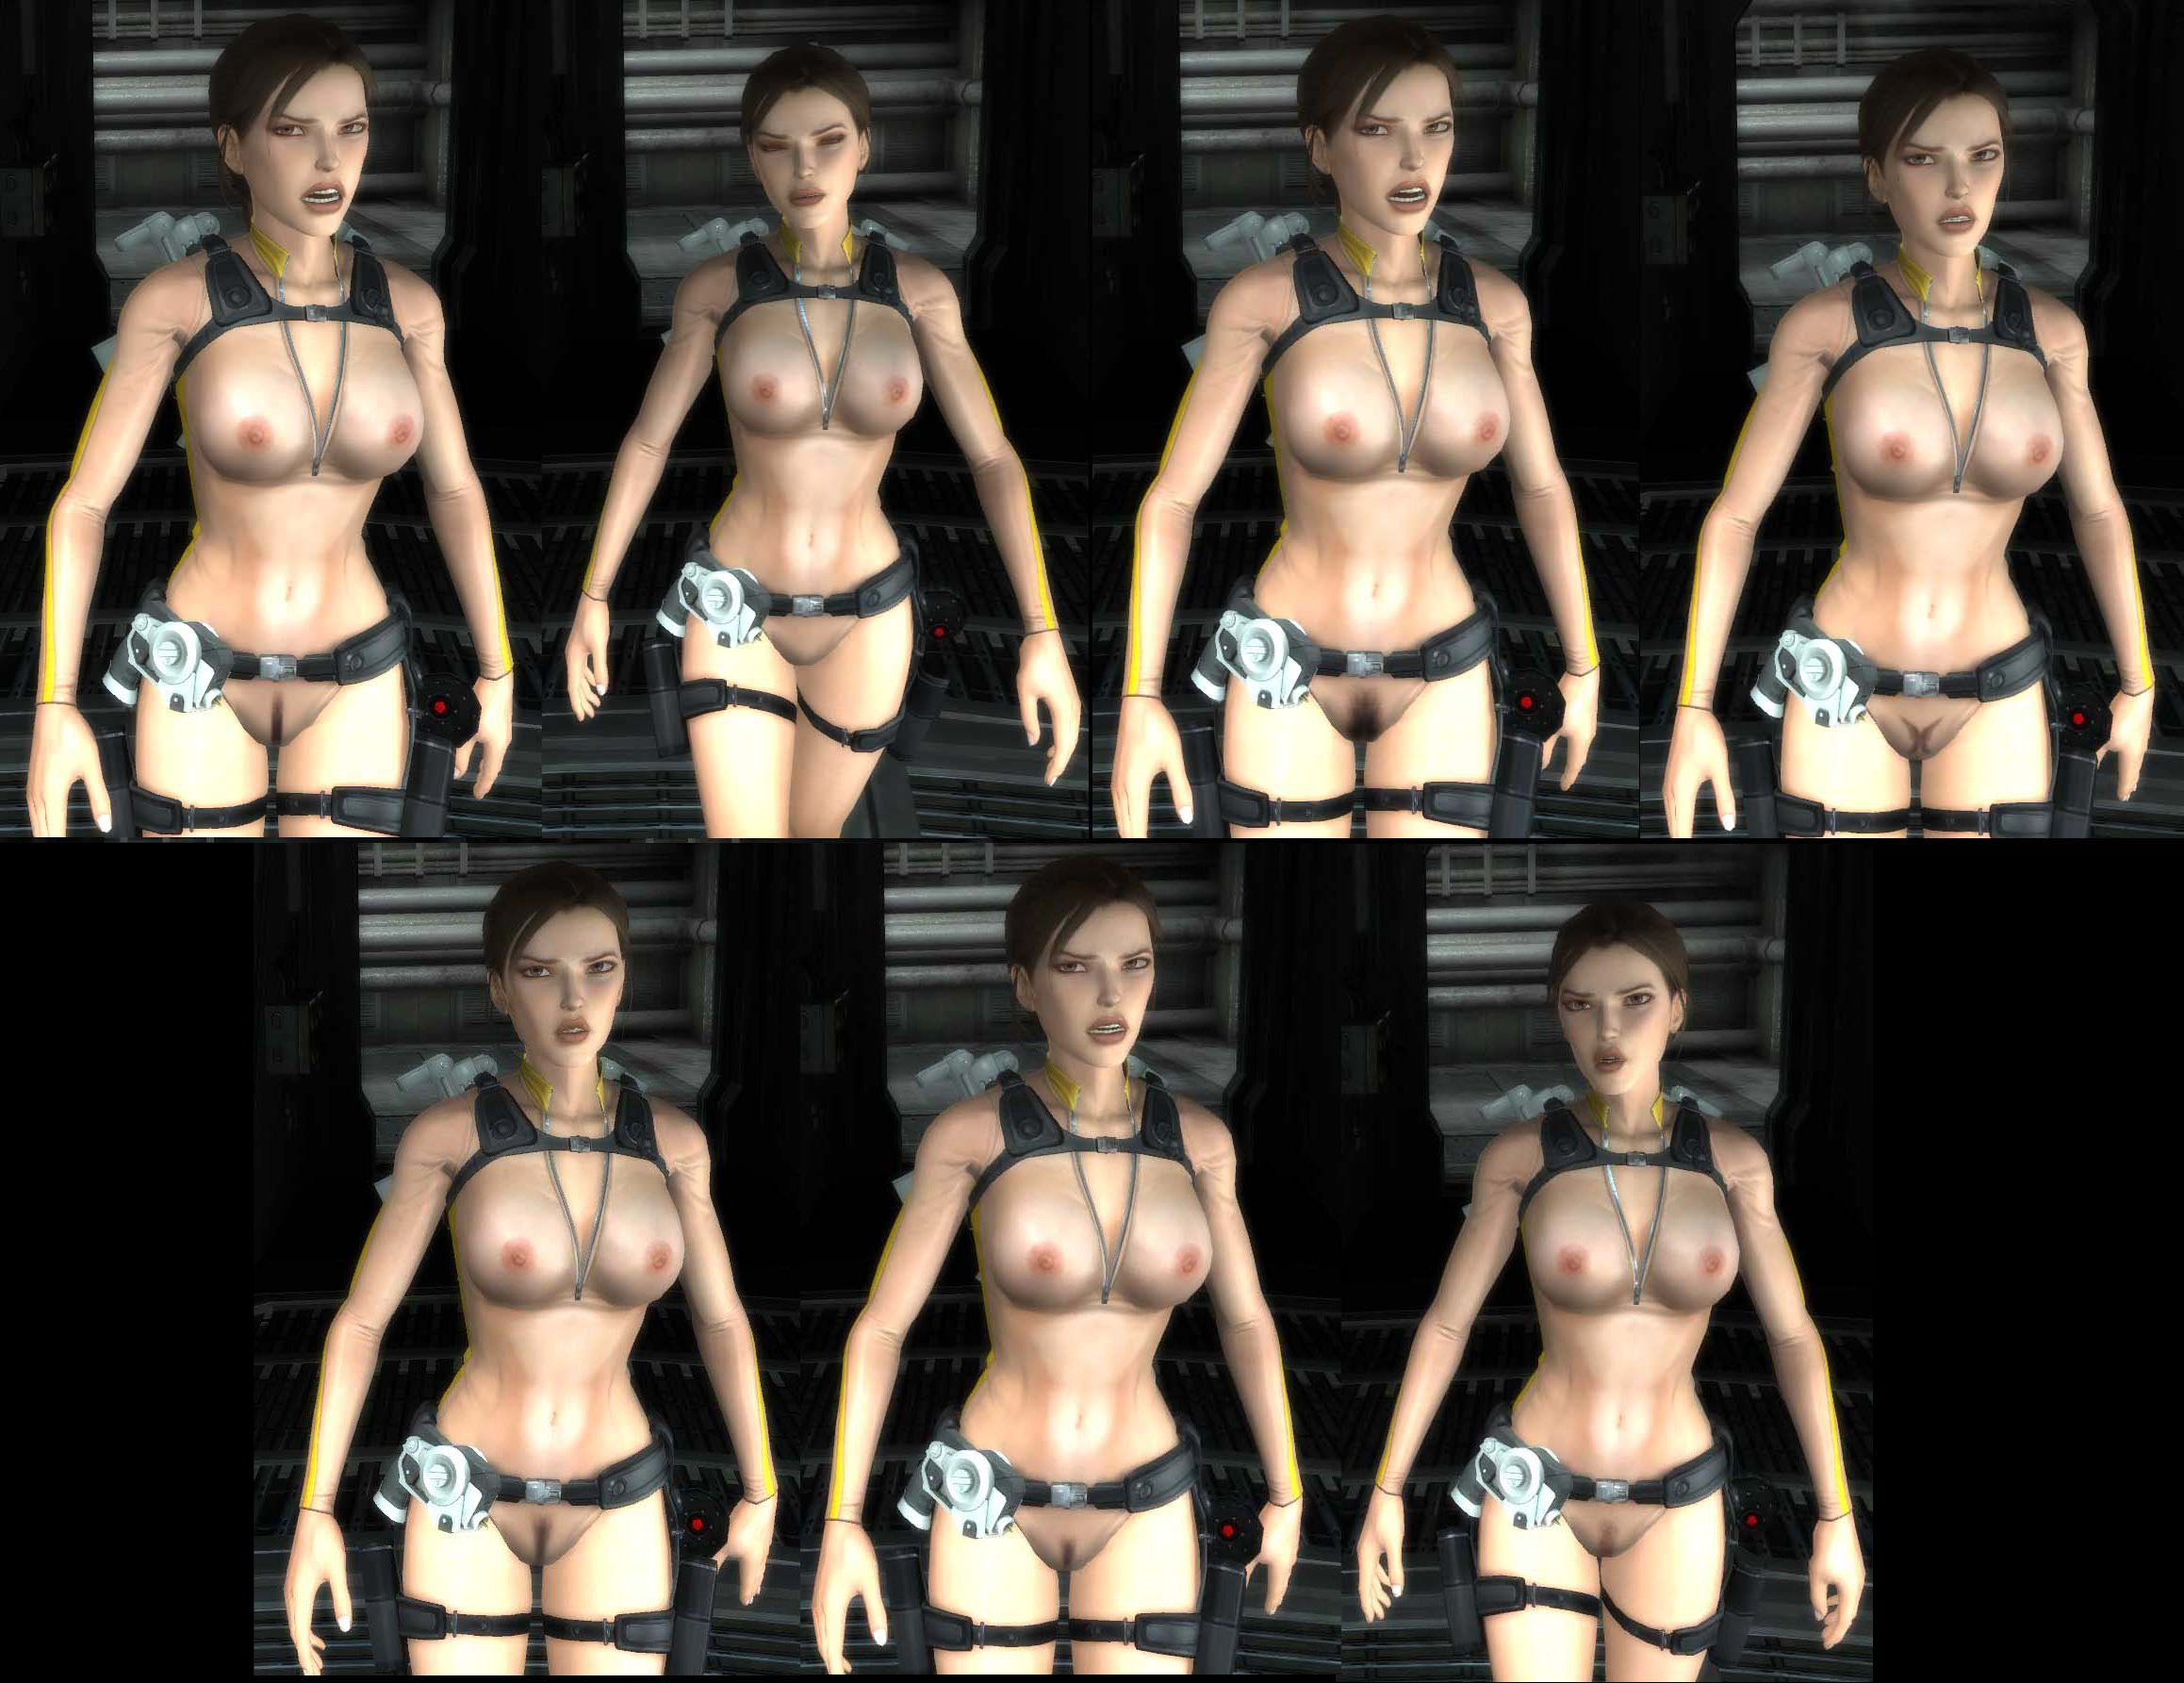 Lara croft of the underworld underground nude hentay galleries